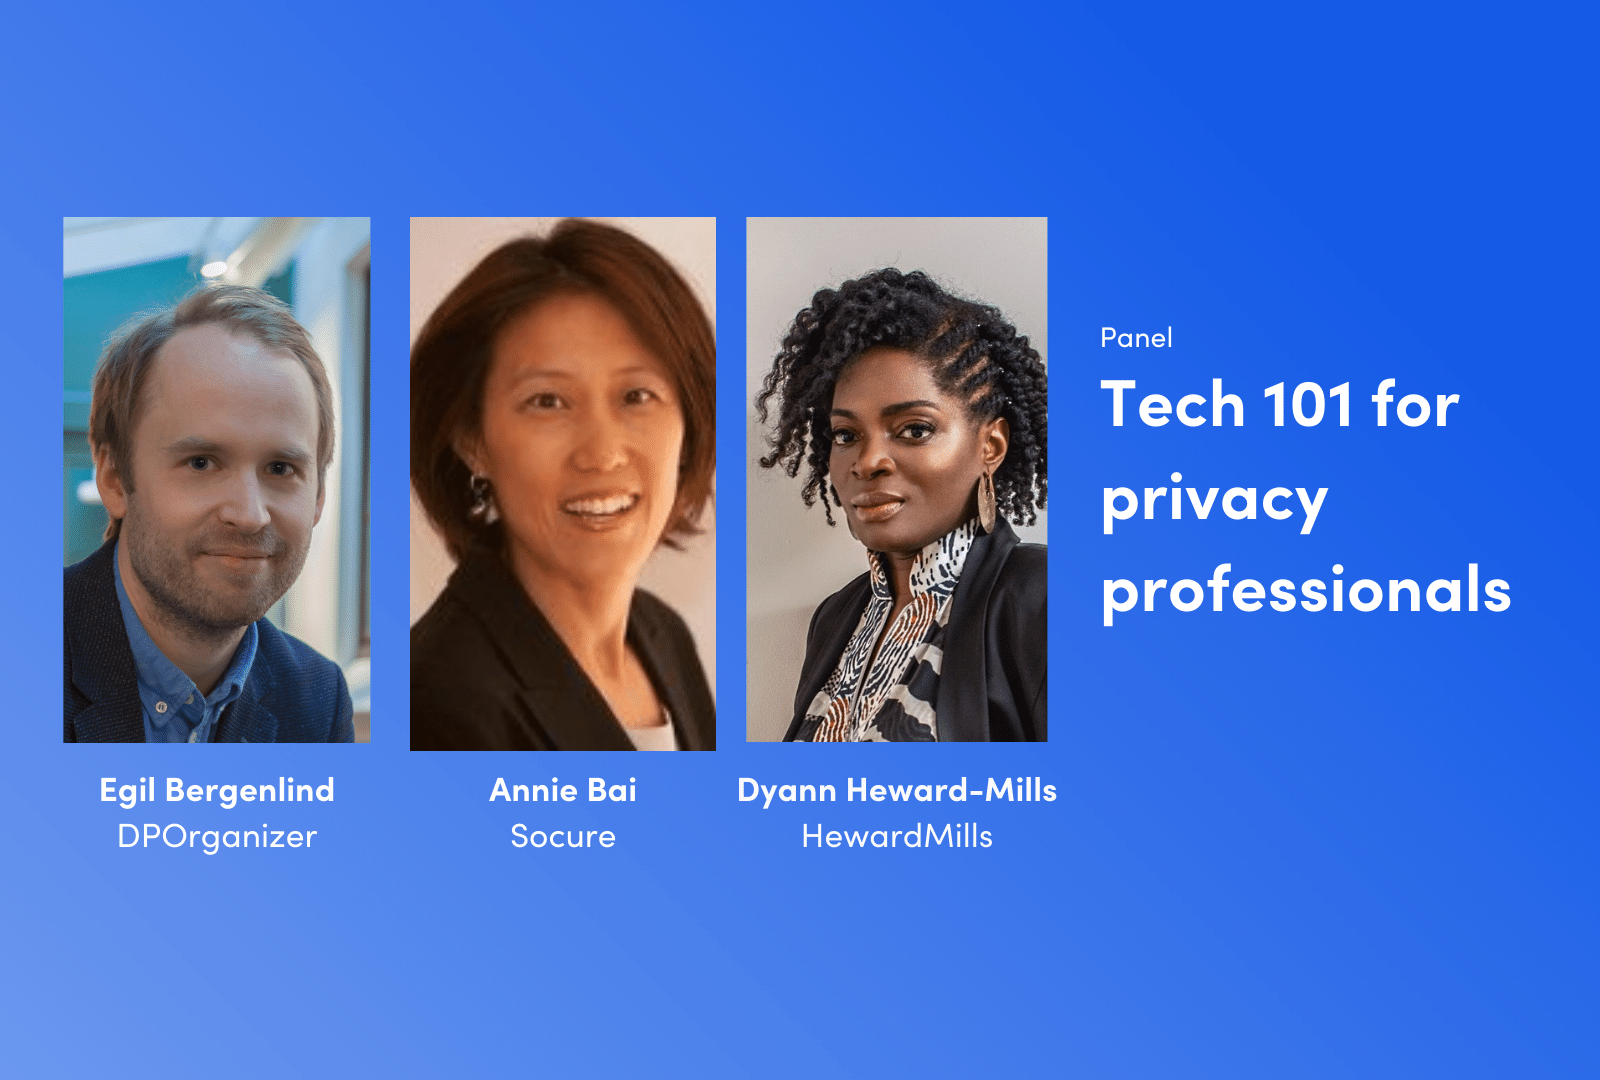 Tech 101 for privacy professionals